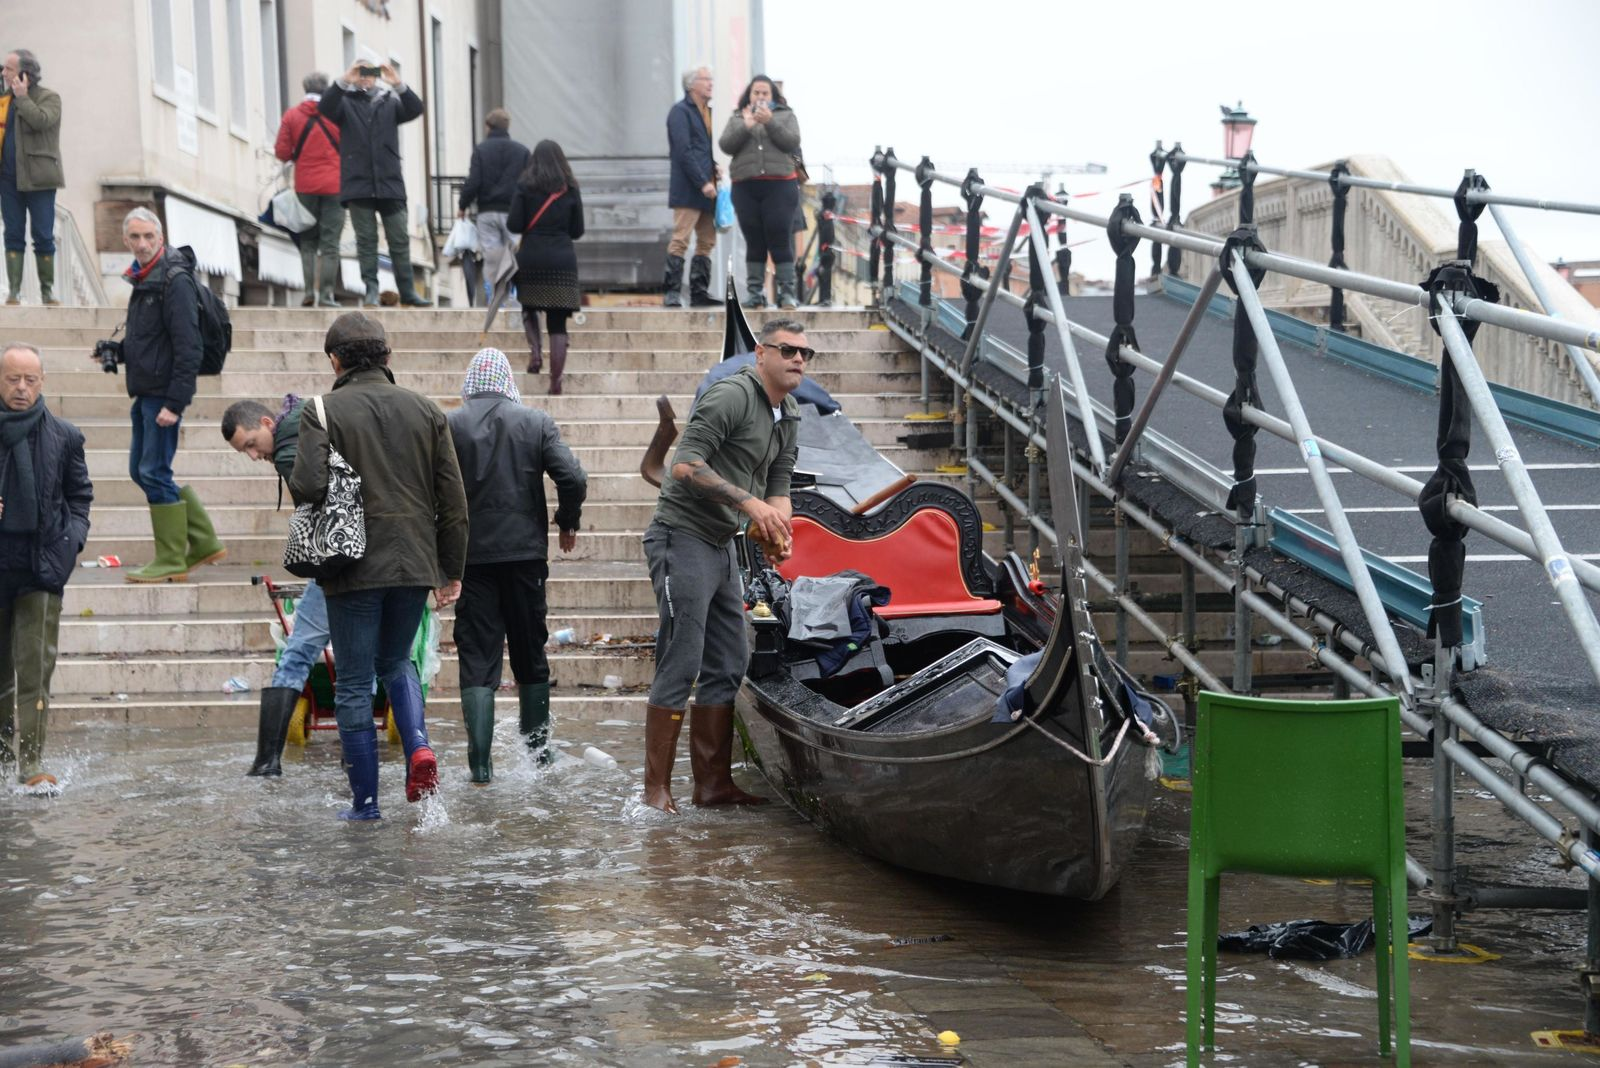 A man clean up a gondola boat after a high tide, in Venice, Italy, Wednesday, Nov. 13, 2019.{ } (Andrea Merola/ANSA via AP)